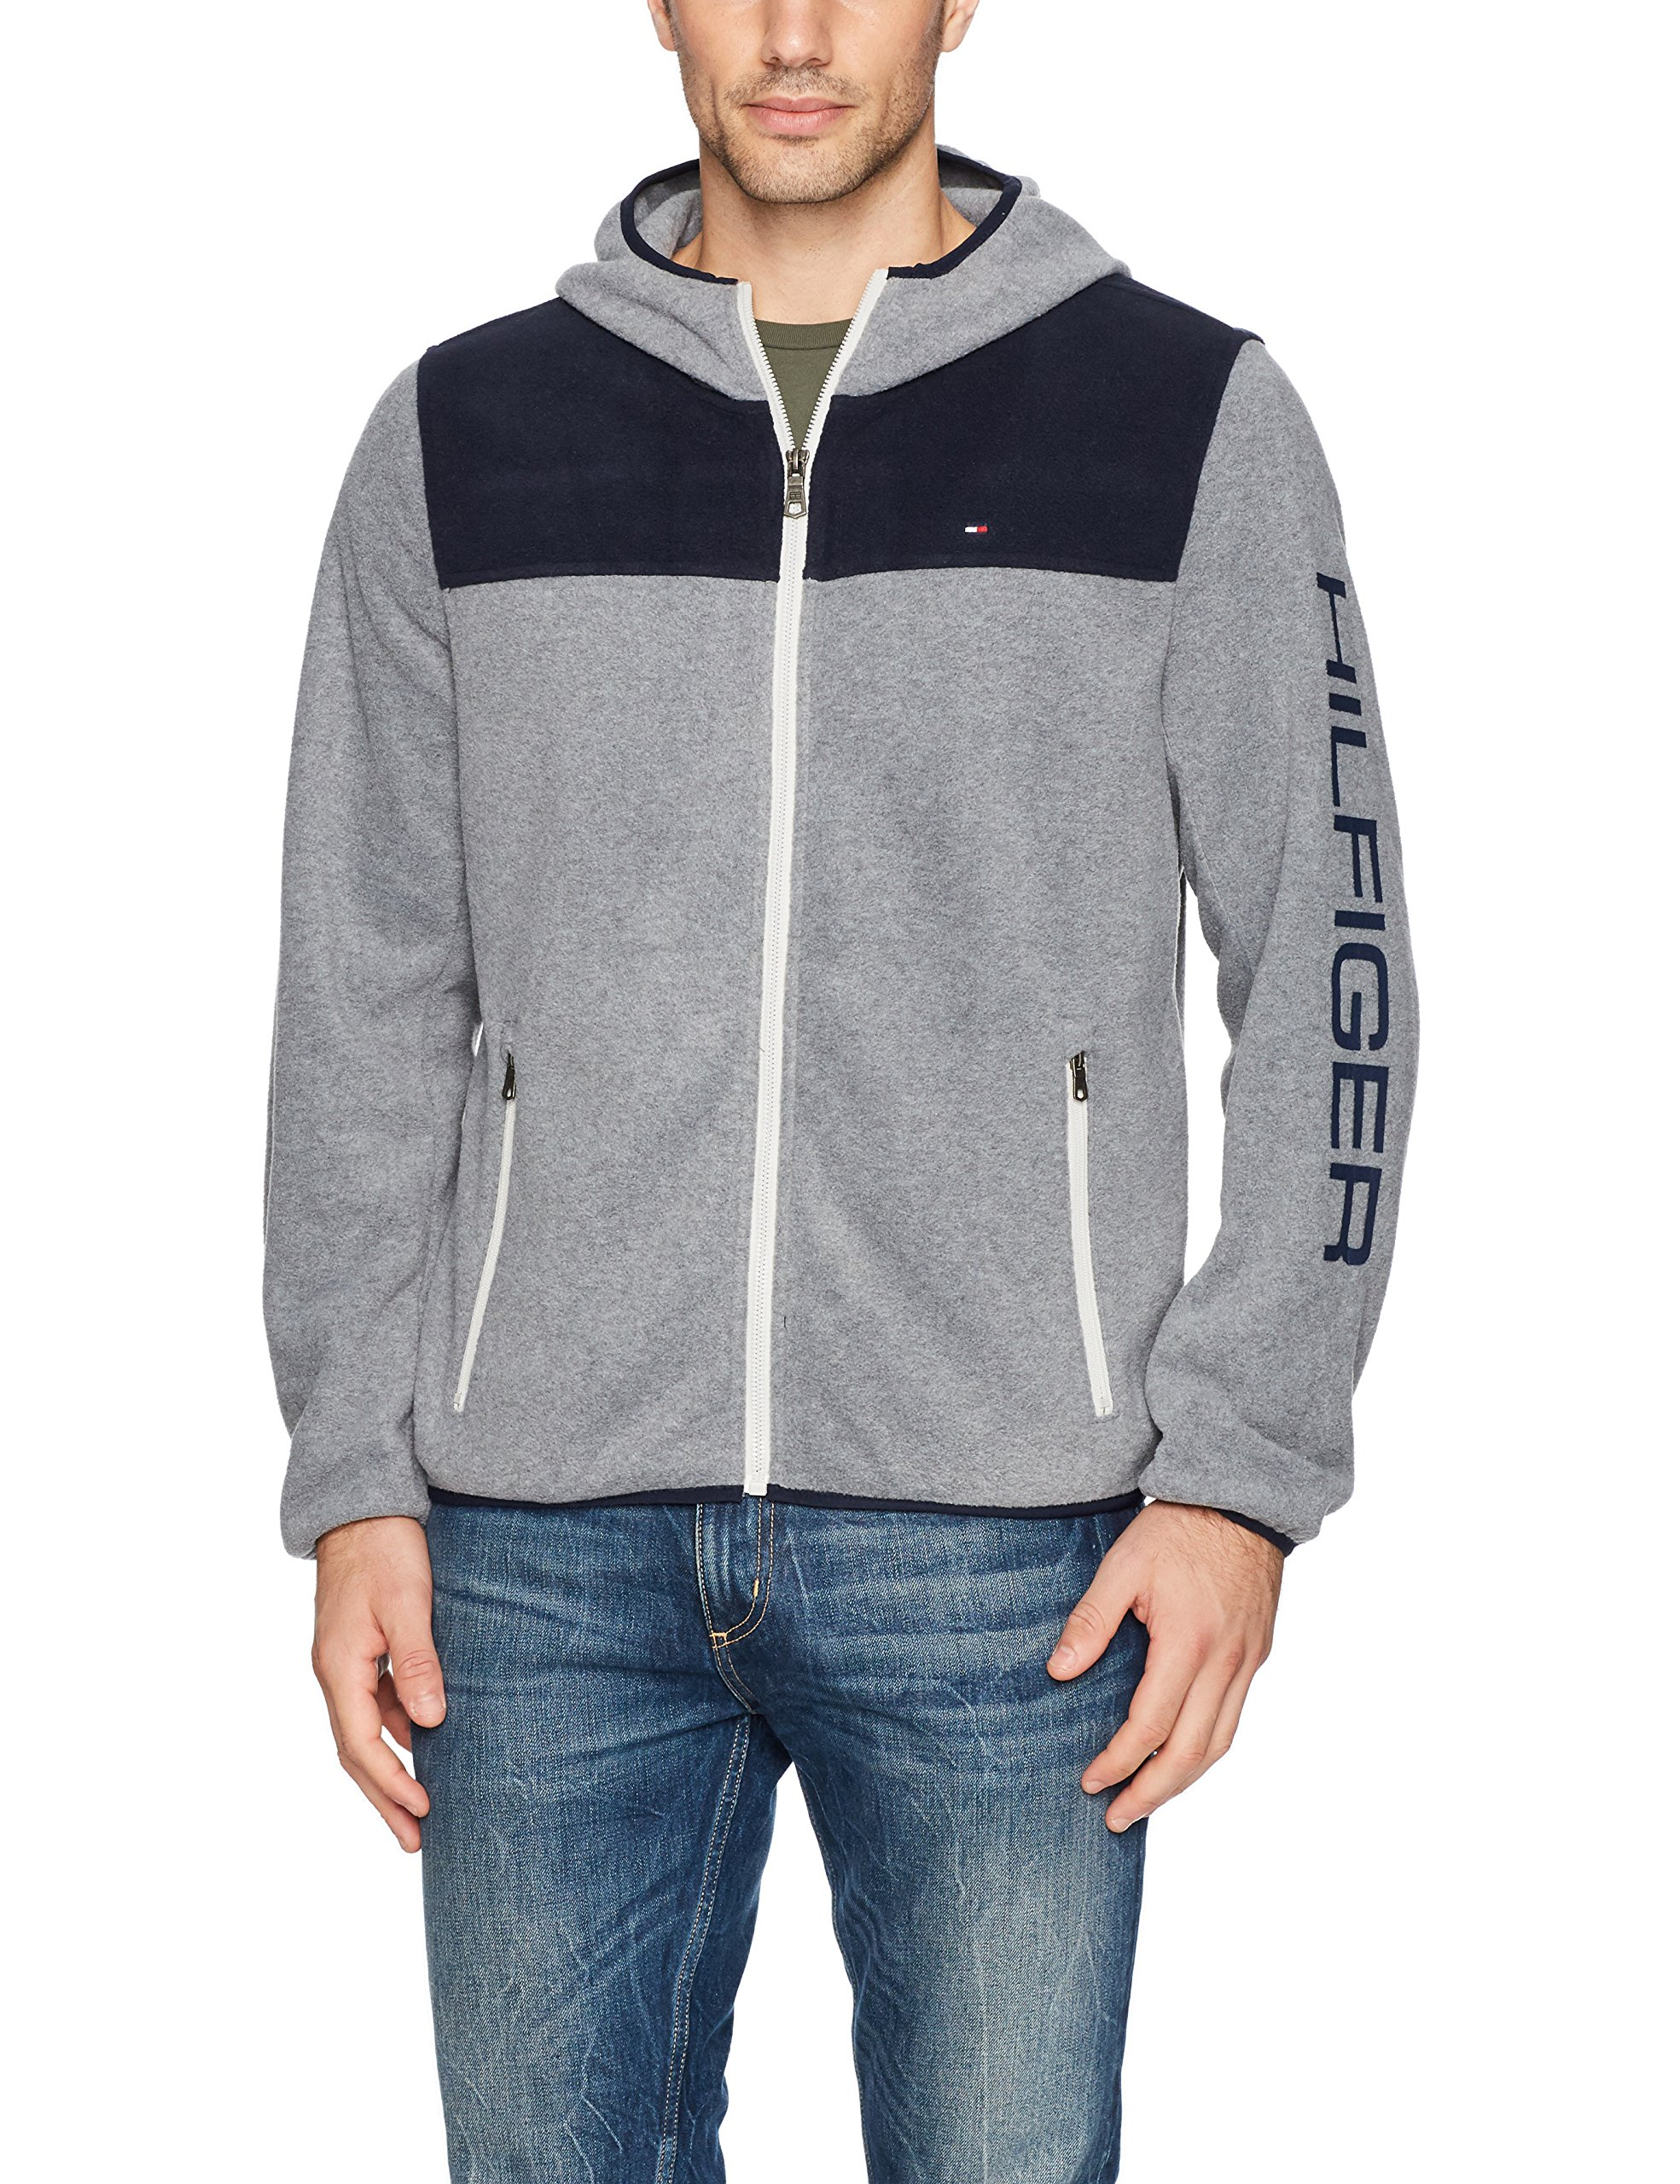 Tommy Hilfiger Men's Hooded Performance Fleece Jacket, Navy/Light Grey, Medium by Tommy Hilfiger